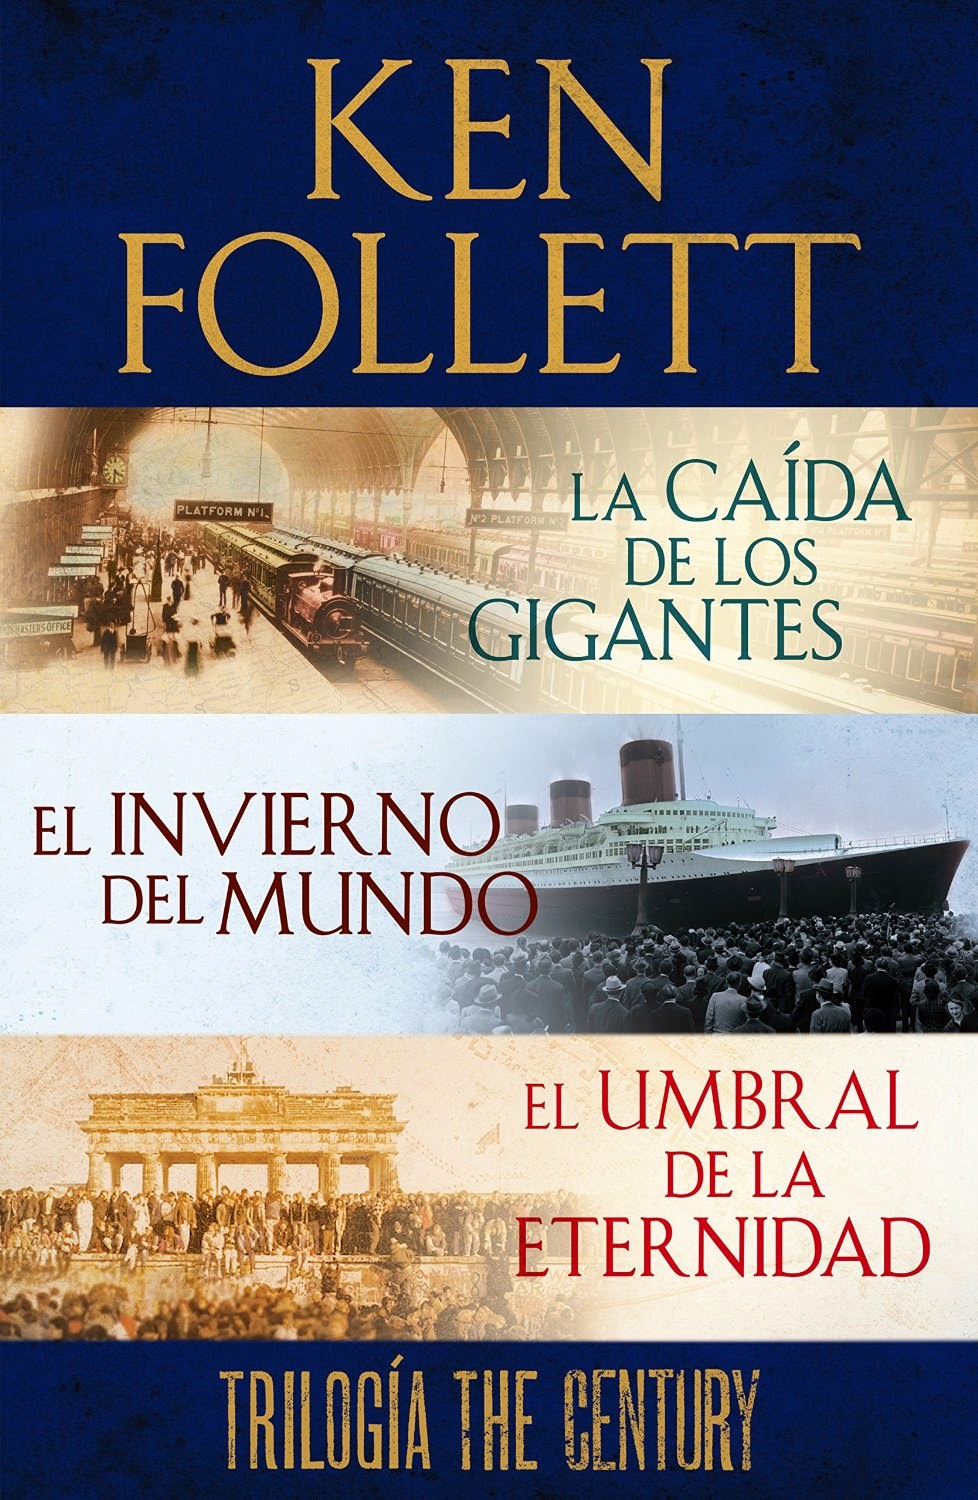 http://www.amazon.es/Trilogia-Century-Bundle-gigantes-eternidad-ebook/dp/B00OQSW32U/ref=sr_1_13?ie=UTF8&qid=1429528237&sr=8-13&keywords=ken+follett